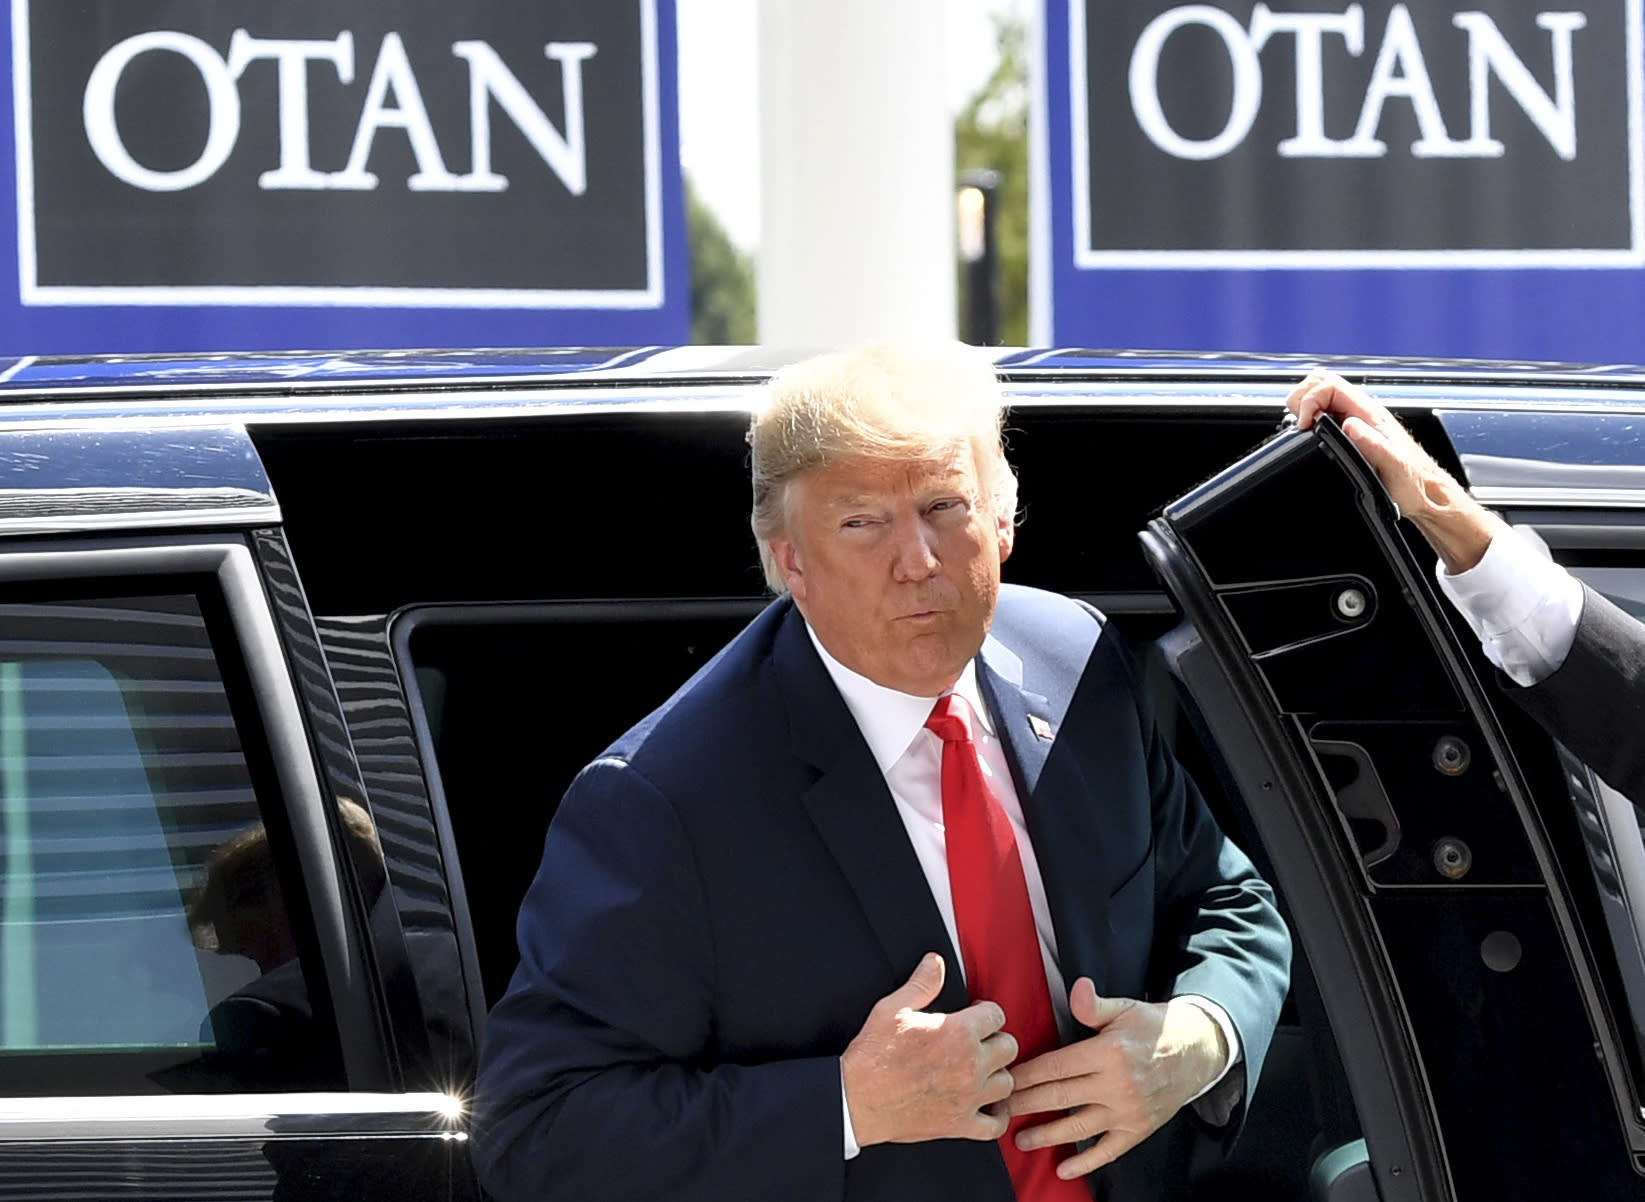 <p>President Trump arrives for the summit of heads of state and government at NATO headquarters in Brussels on Wednesday, July 11, 2018. NATO leaders gathered in Brussels for a two-day summit to discuss Russia, Iraq and their mission in Afghanistan. (Photo: Geert Vanden Wijngaert/AP) </p>